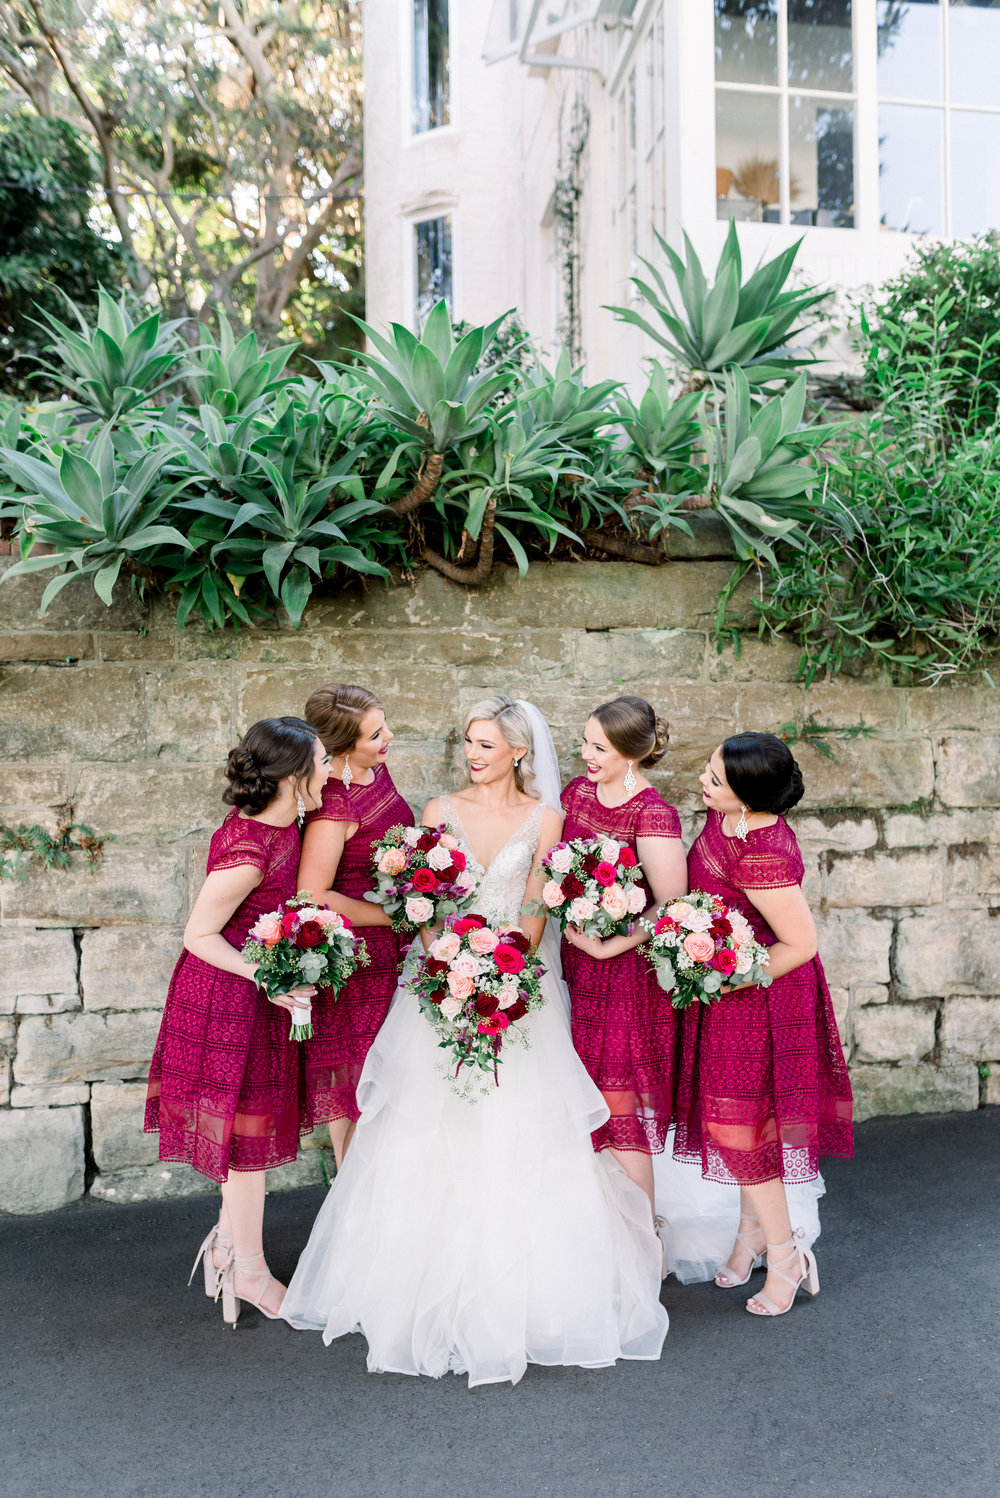 Collection Three - $2950 - 6 hours photographic coverageApproximately 500 edited, high-resolution imagesWedding images supplied on our custom USBOnline gallery to share with friends and family